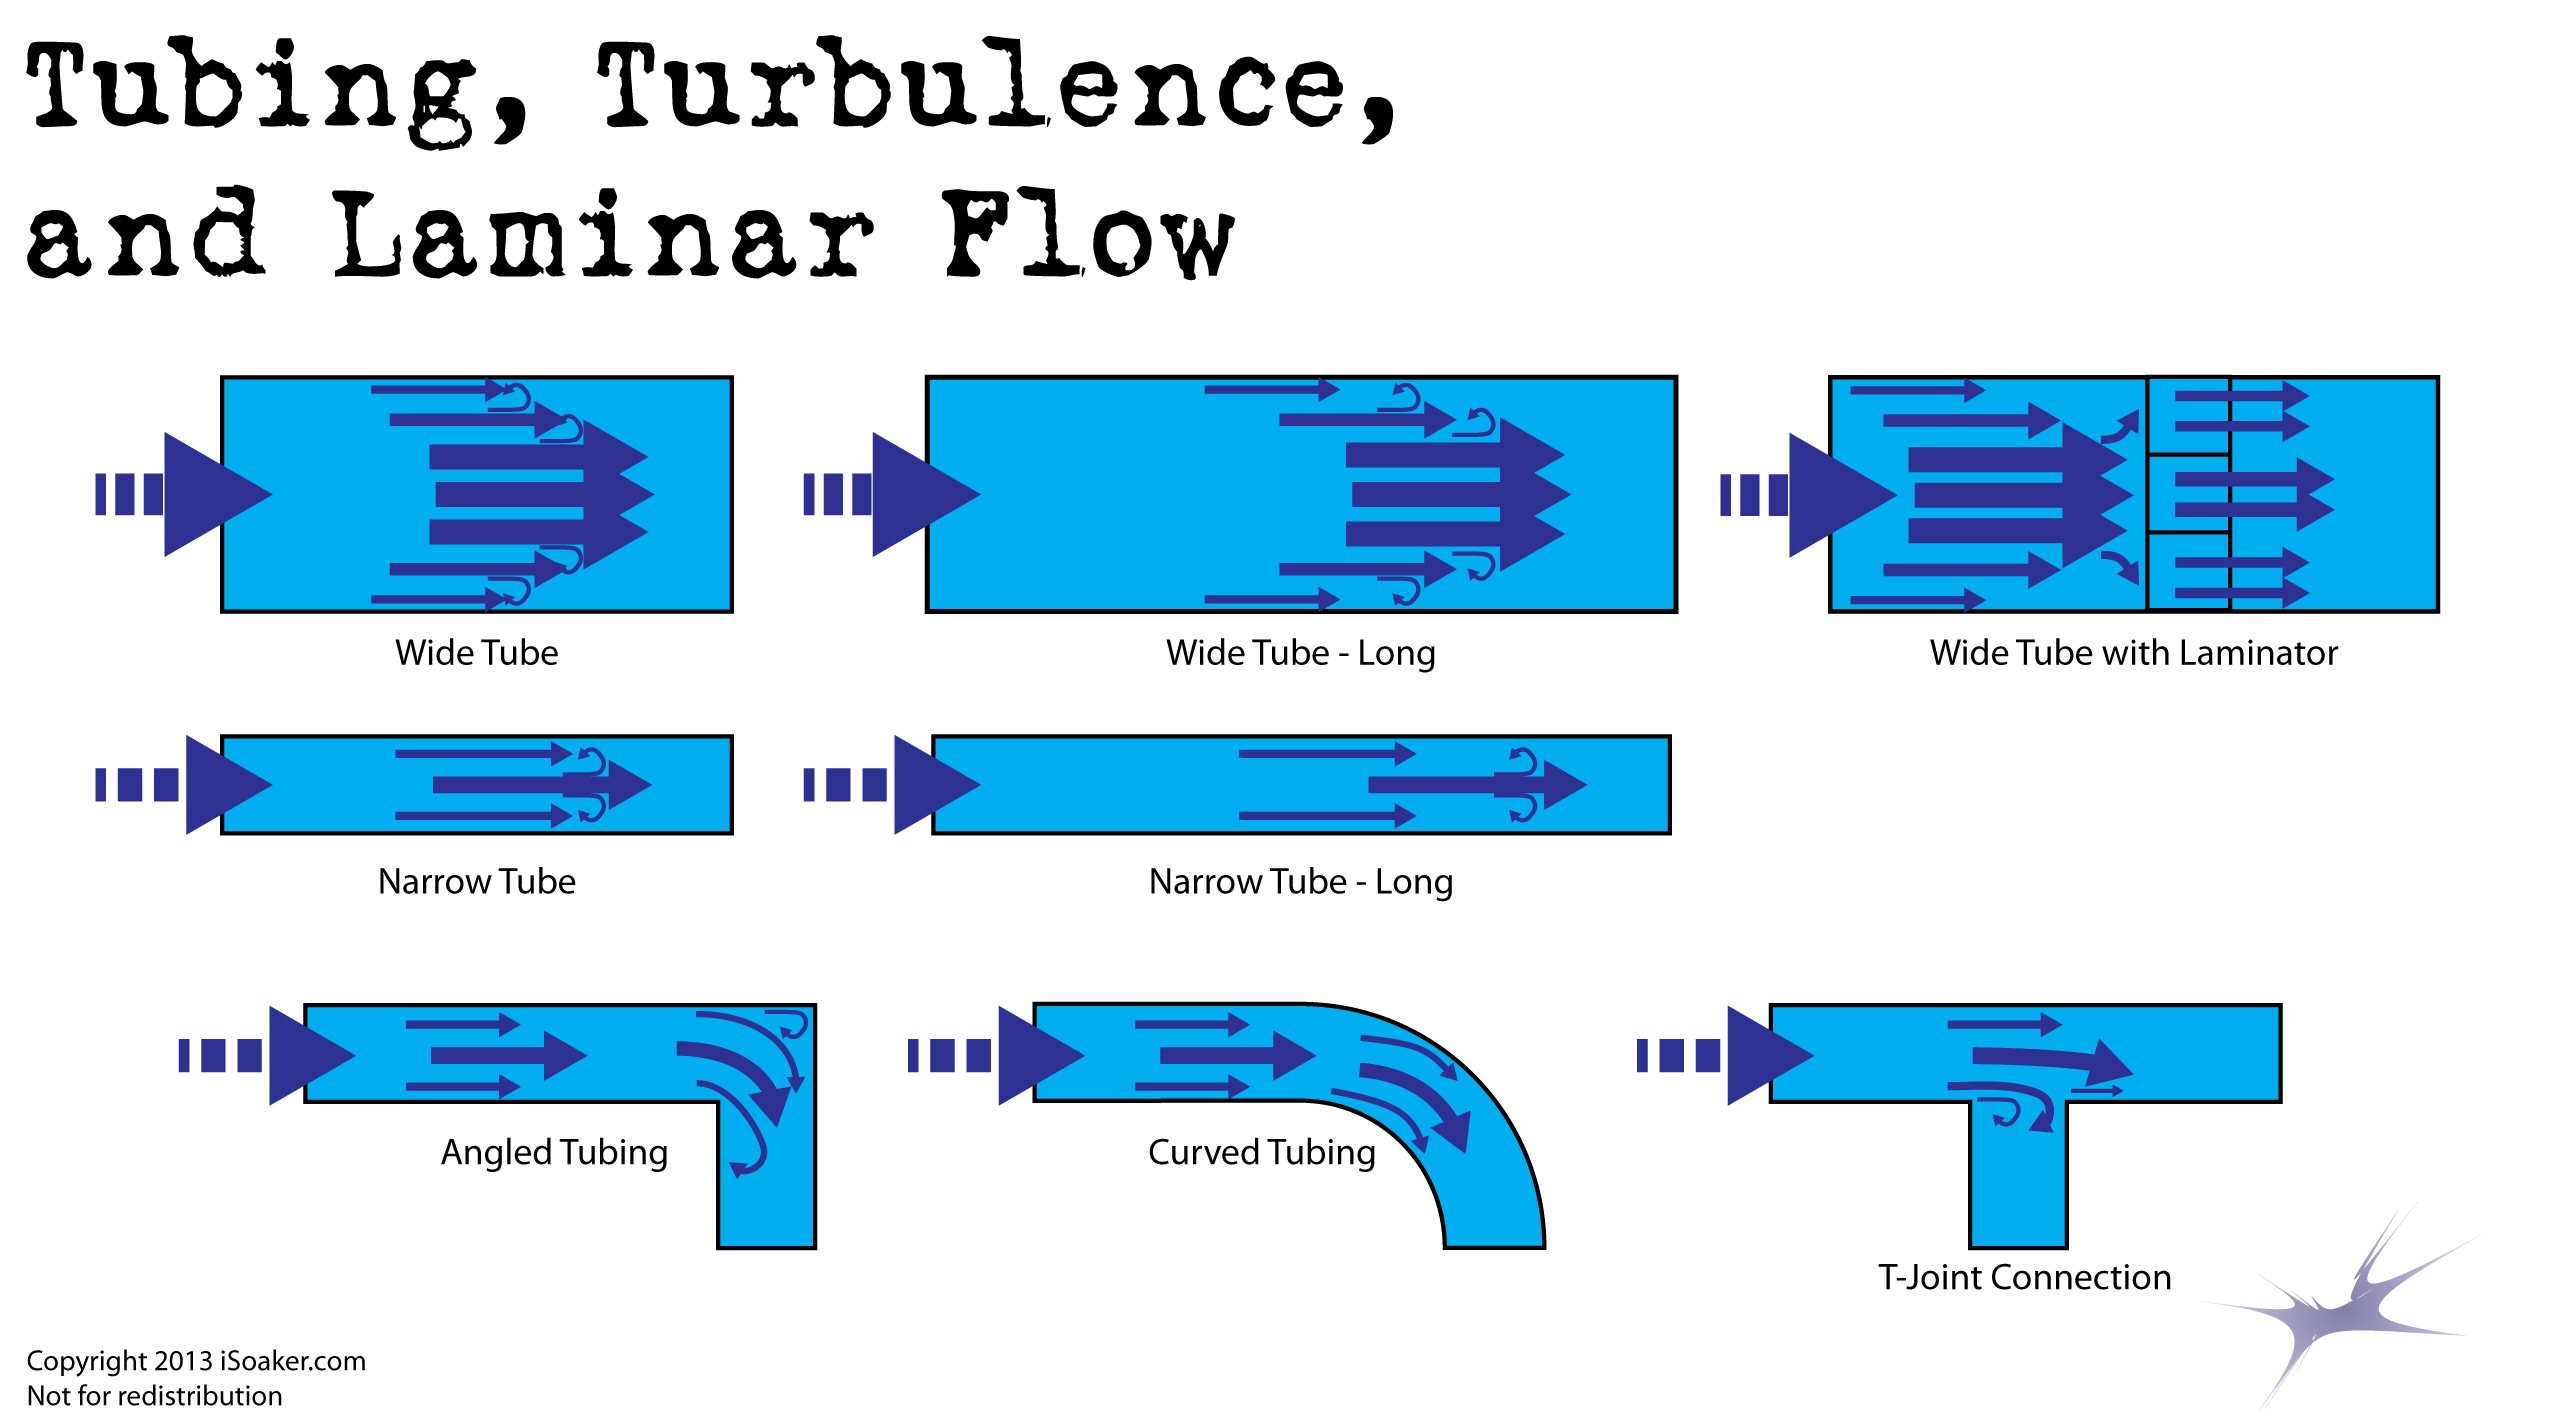 Water Flow in Tubing Diagram